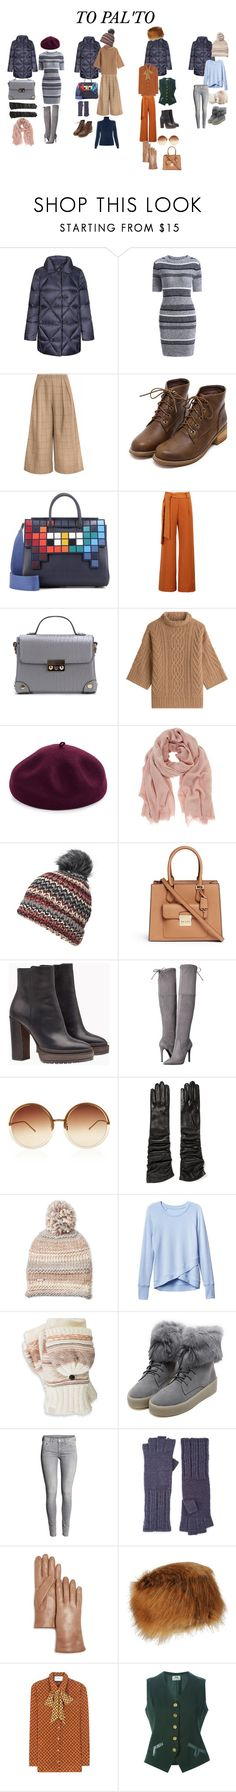 """How to wear down jacket"" by helen-alexandrov on Polyvore featuring мода, FAY, Anya Hindmarch, WithChic, MaxMara, Kathy Jeanne, Mint Velvet, Dorothy Perkins, Michael Kors и Brunello Cucinelli"